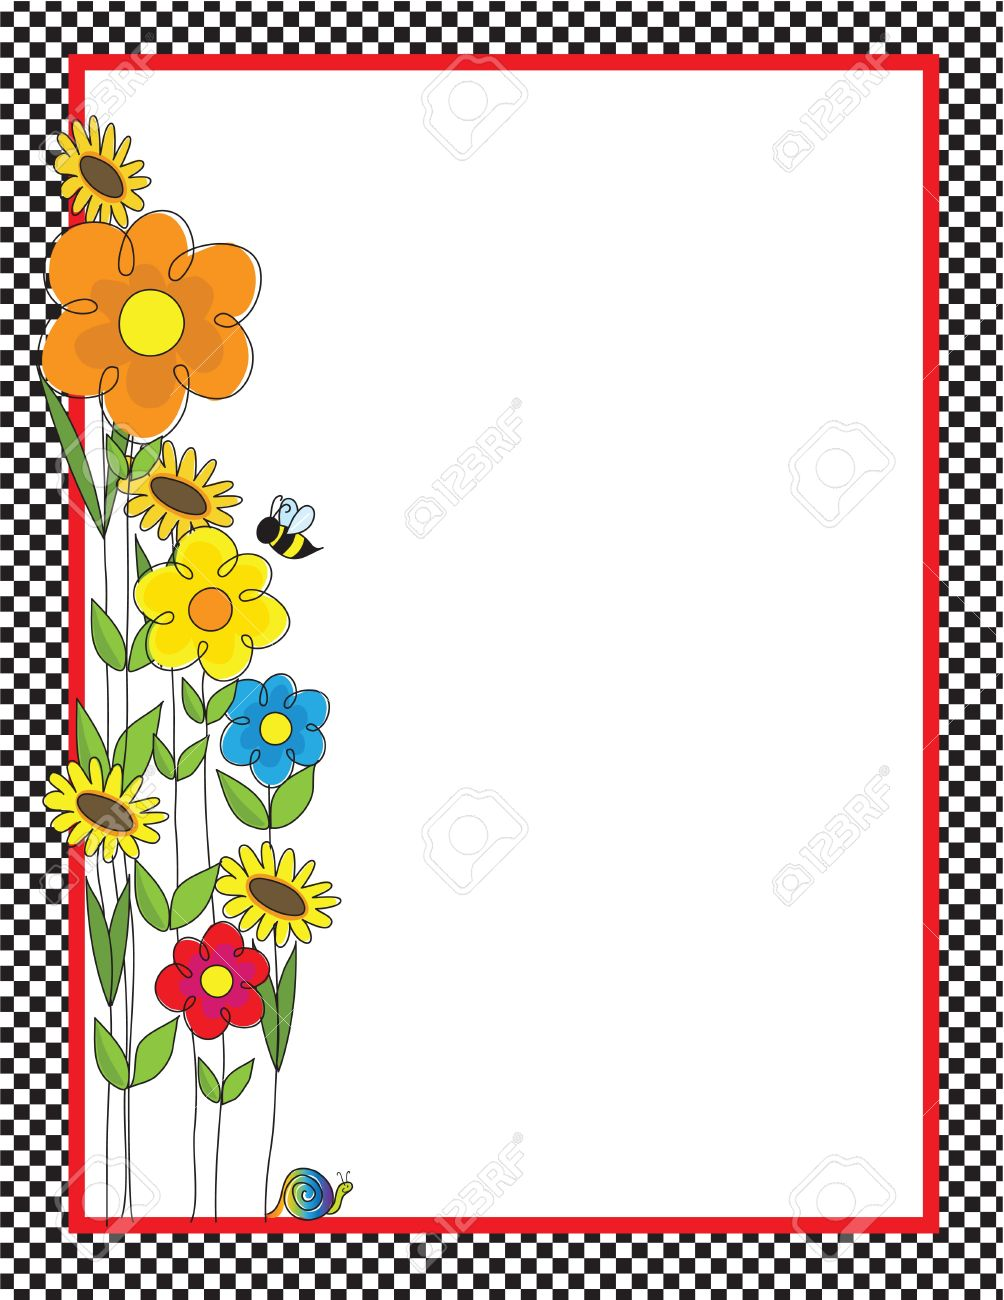 A black and white checkered border featuring a spring garden with a bee and a snail Stock Vector - 9168139